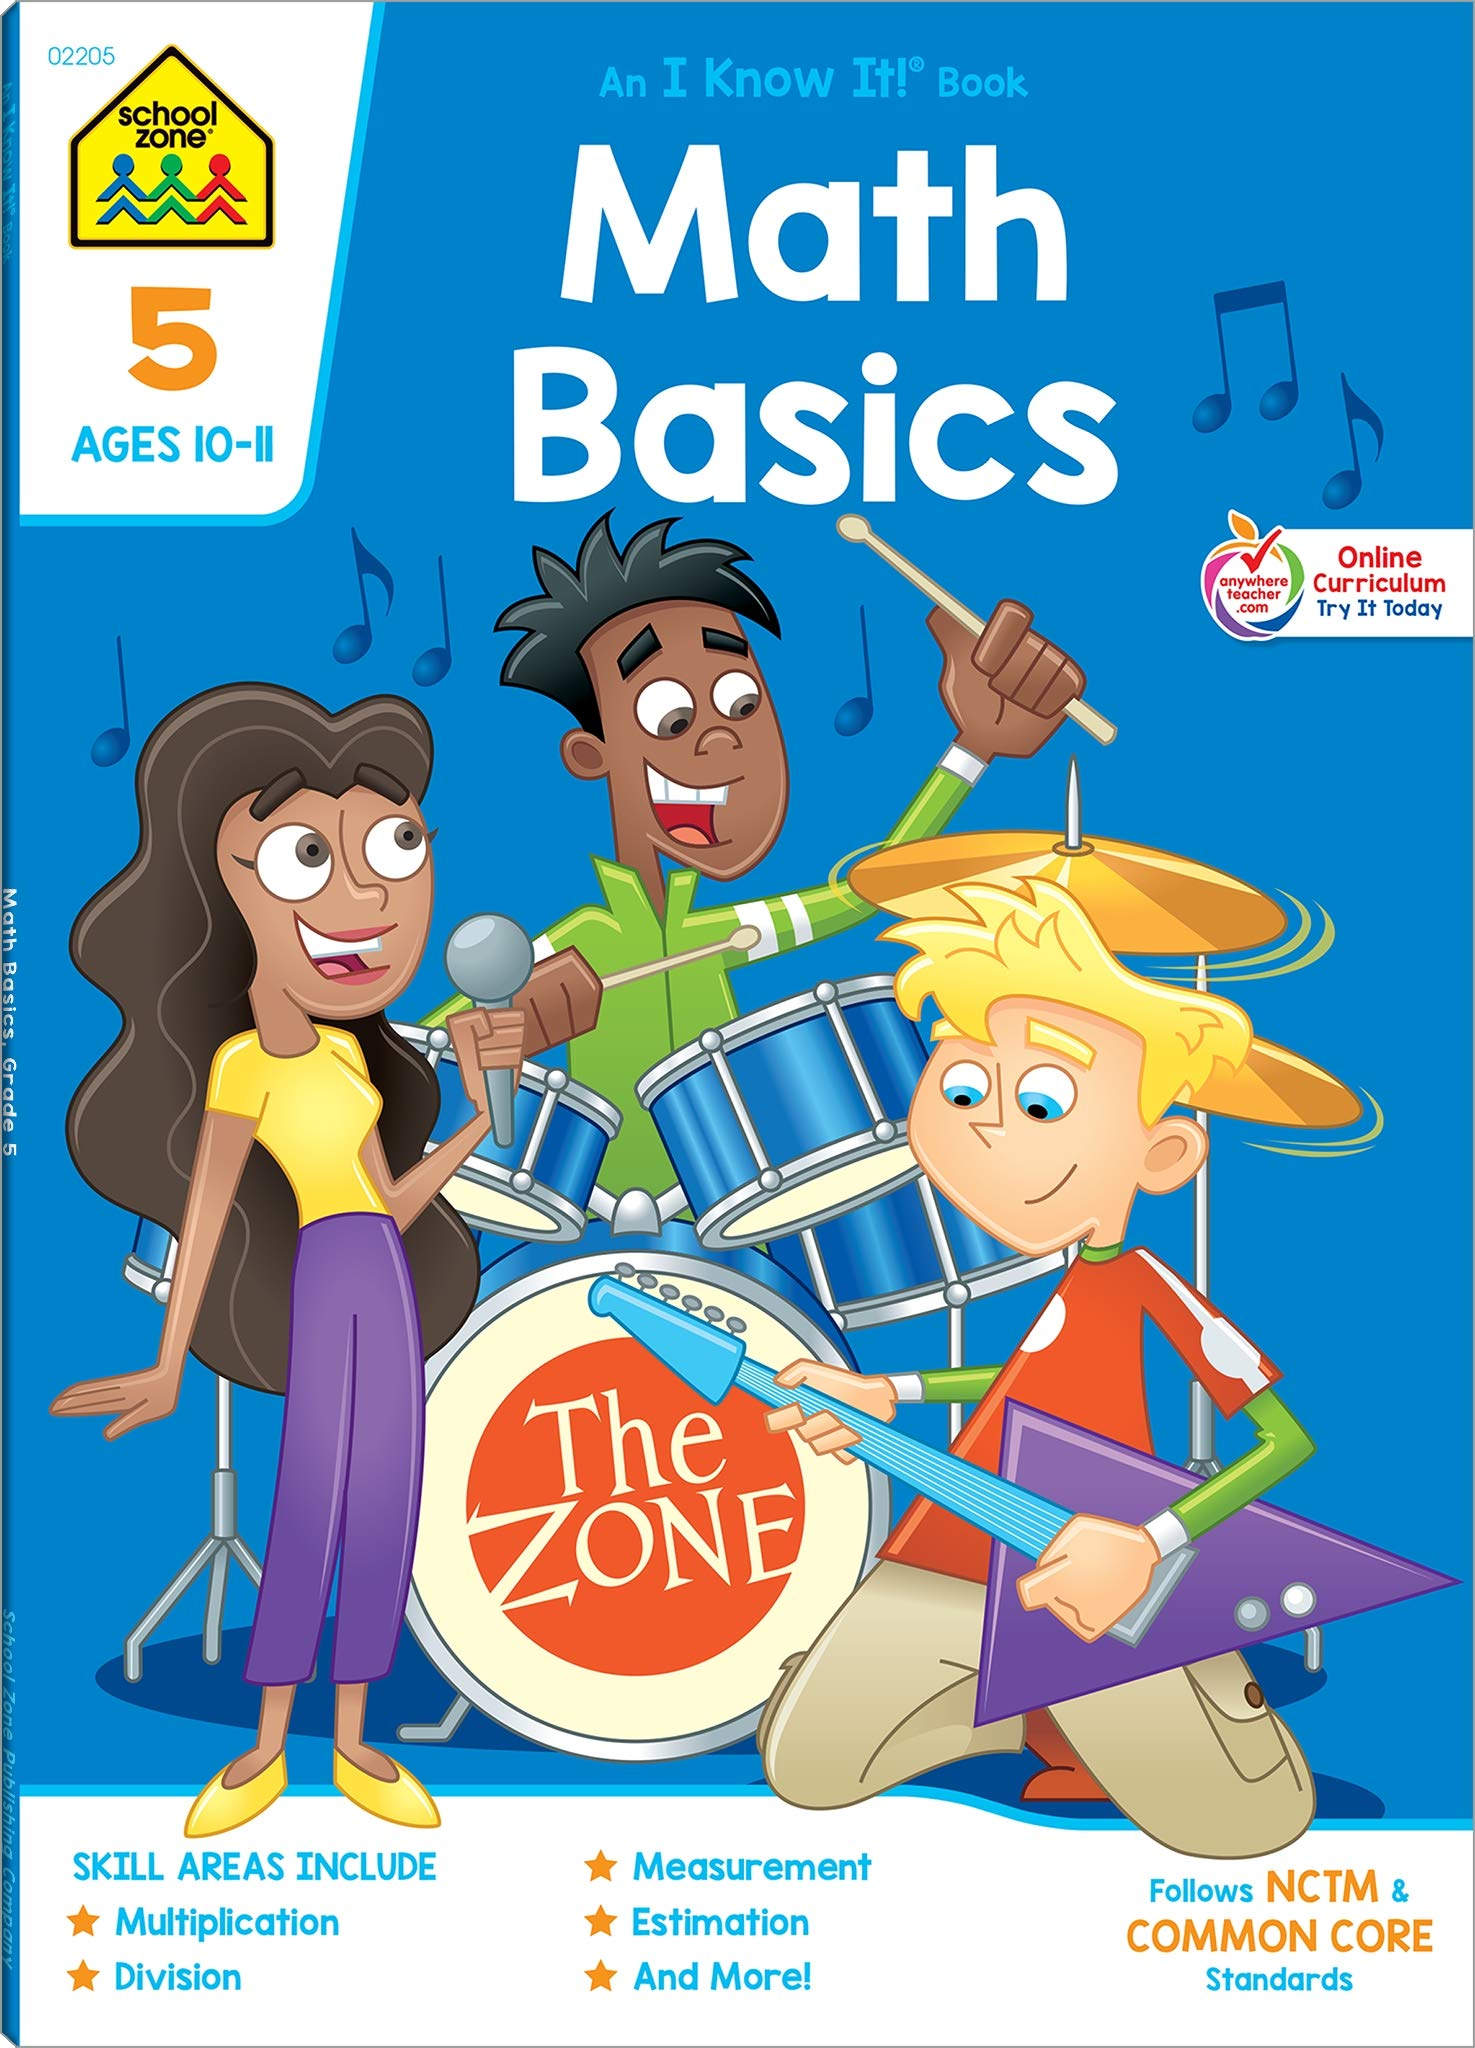 School Zone - Math Basics 5 Deluxe Edition Workbook, Ages 10 to 11, Dividing Fractions, Order of Operations, Perimeter and Area, Multiplication, Metric Units, and More ebook